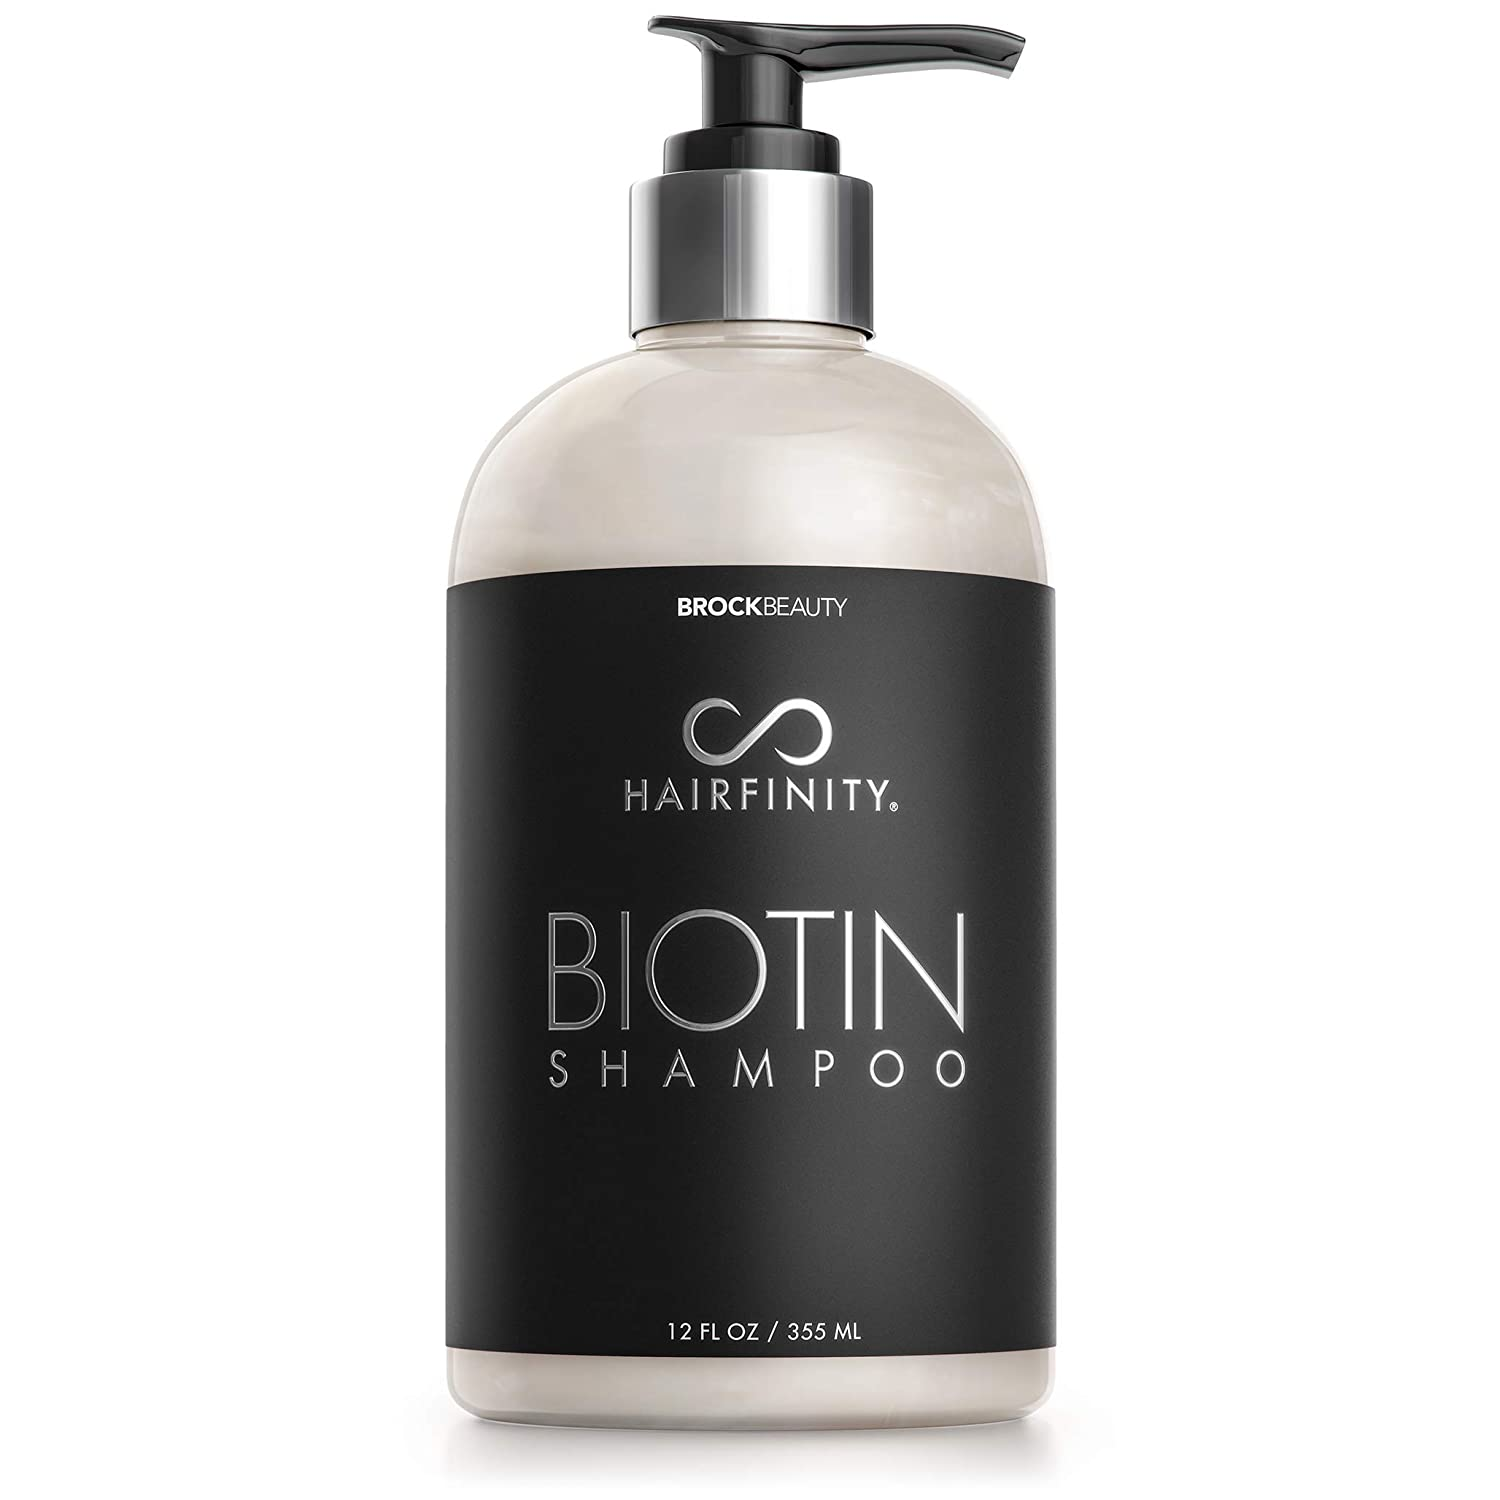 Hairfinity Biotin shop Super popular specialty store Shampoo - Sulfate Best for Silicone Free and